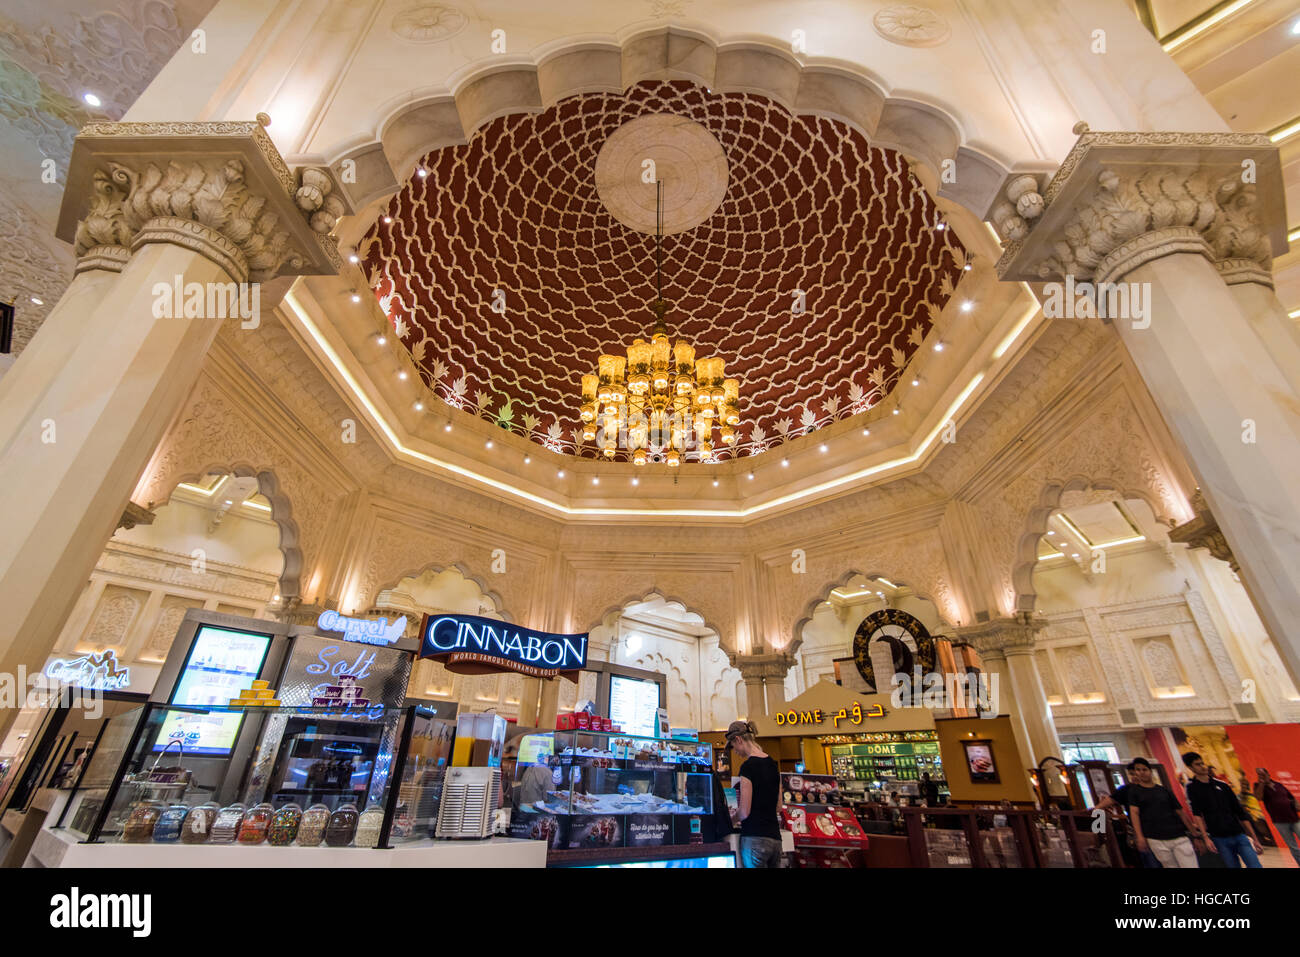 Low angle view of India Court at Ibn Battuta shopping mall